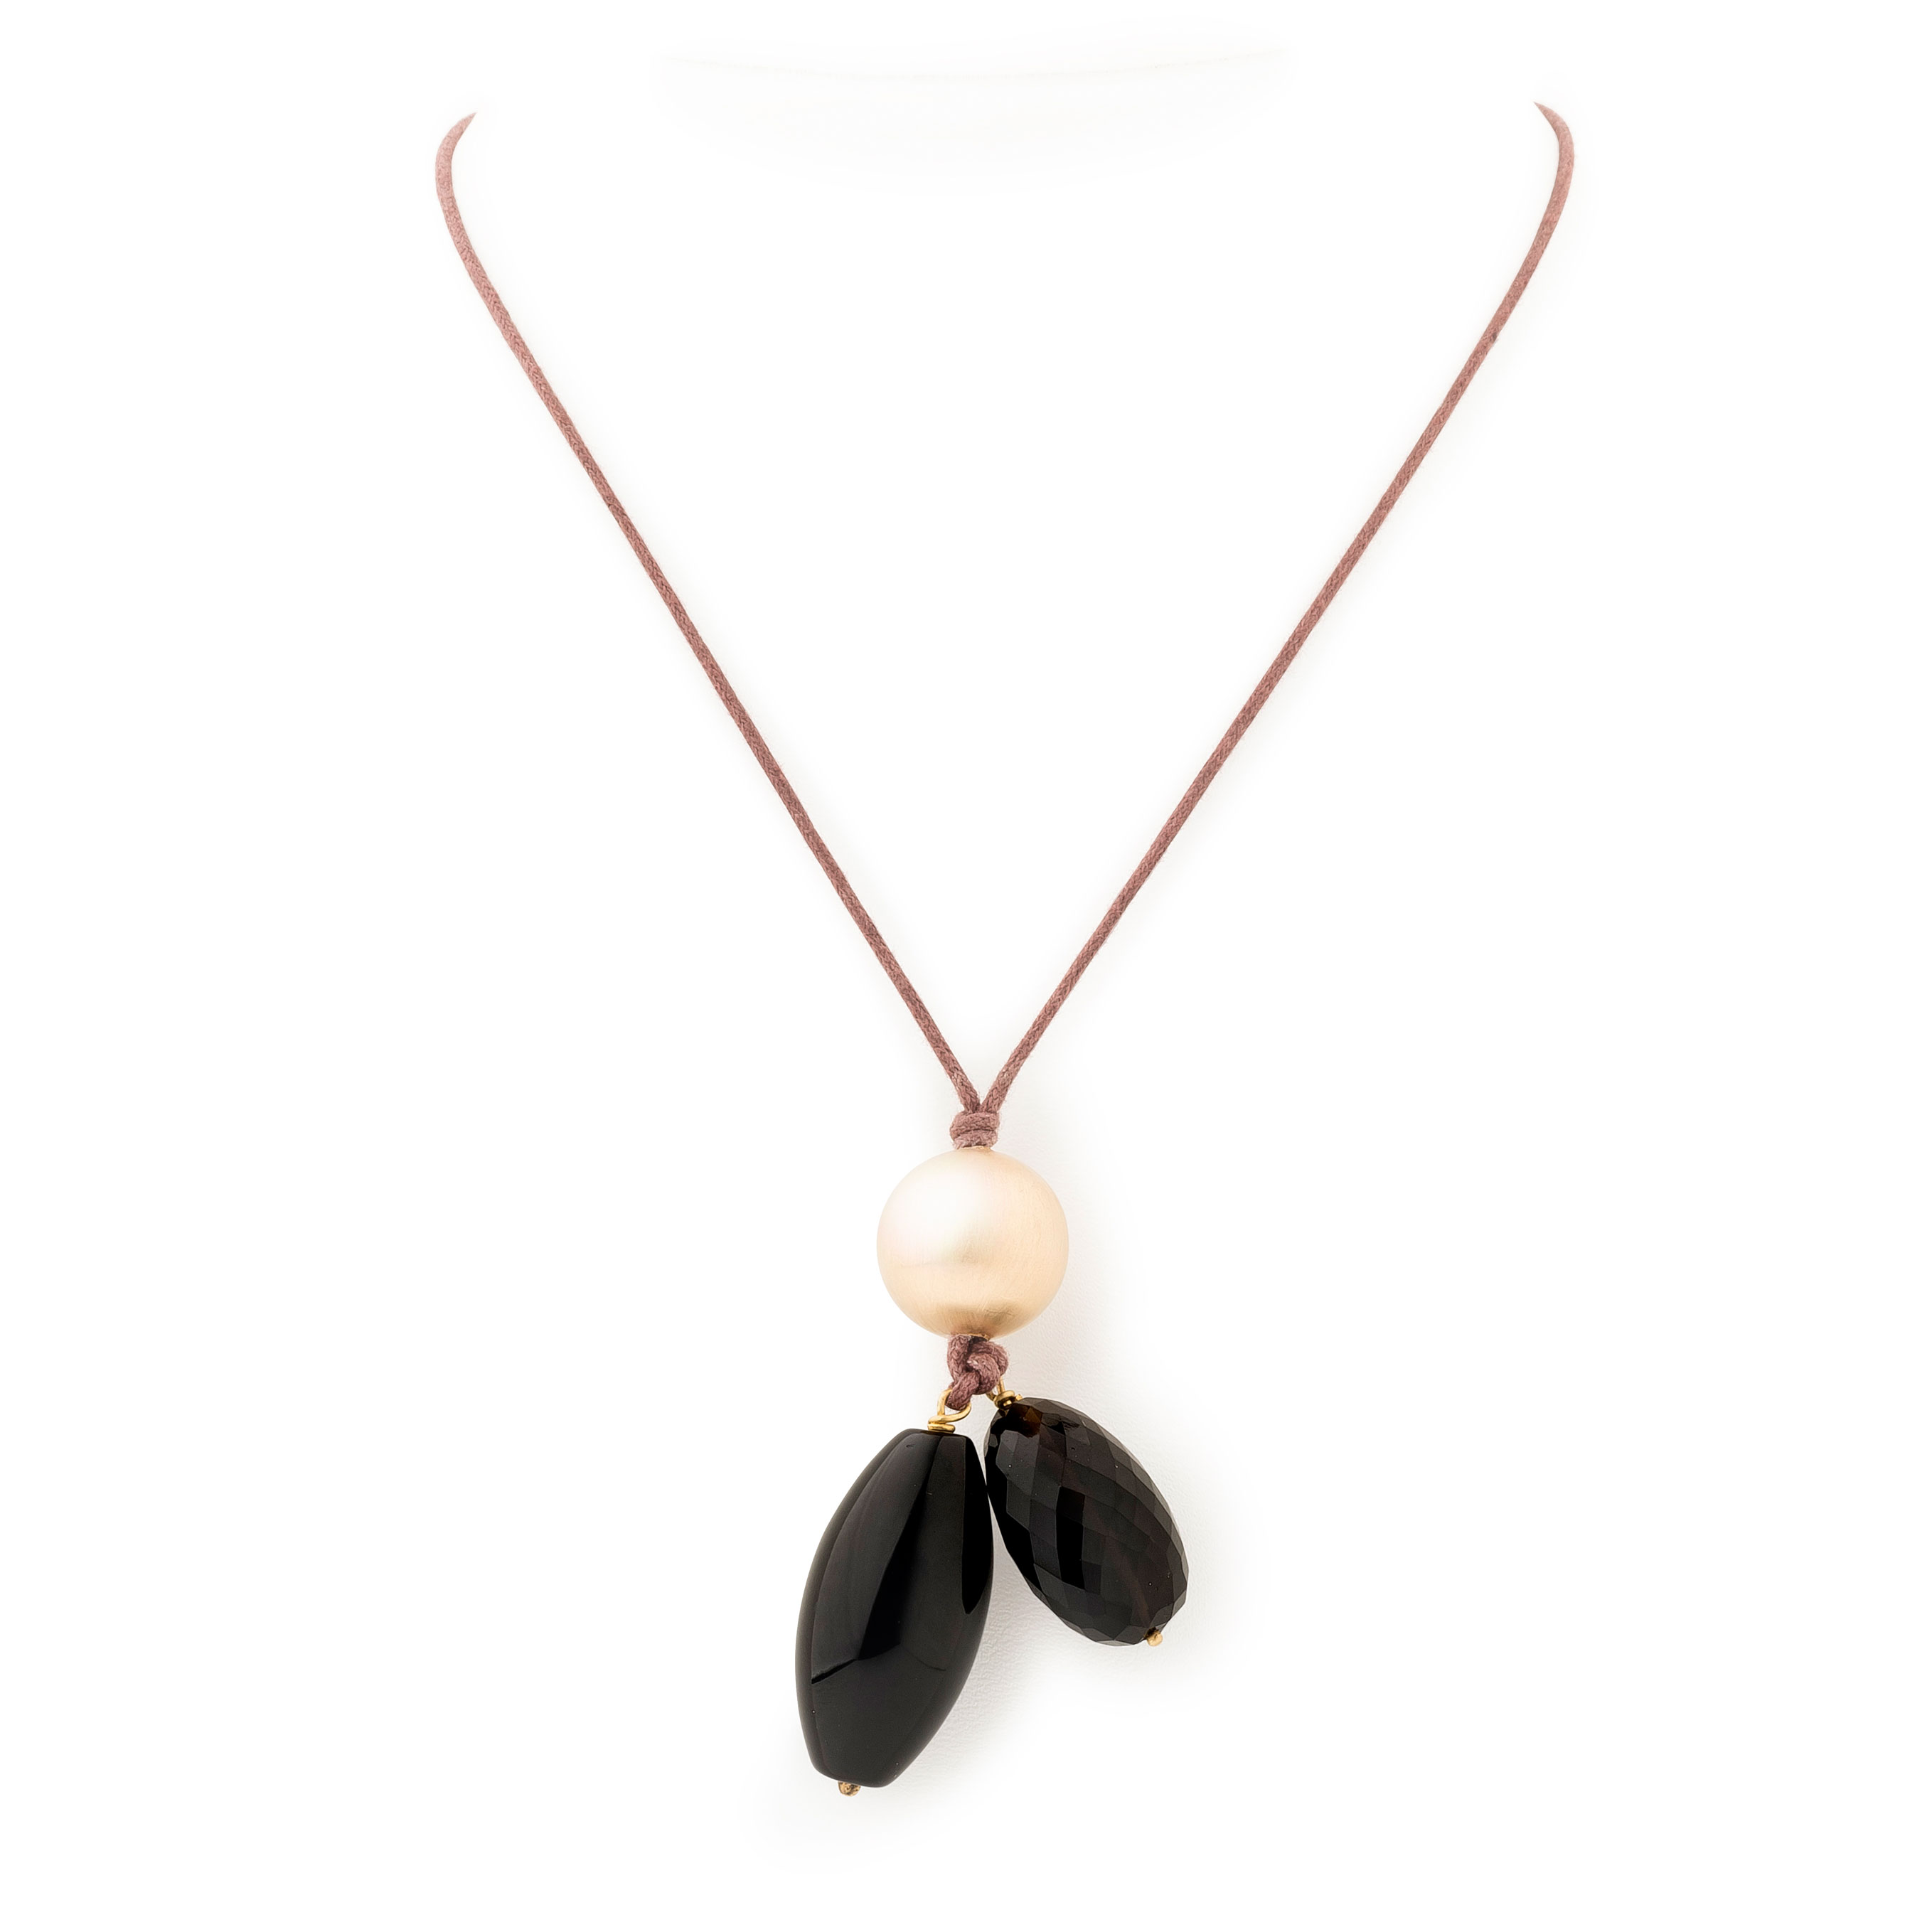 Collier lien Boule or-quartz fumé-onyx